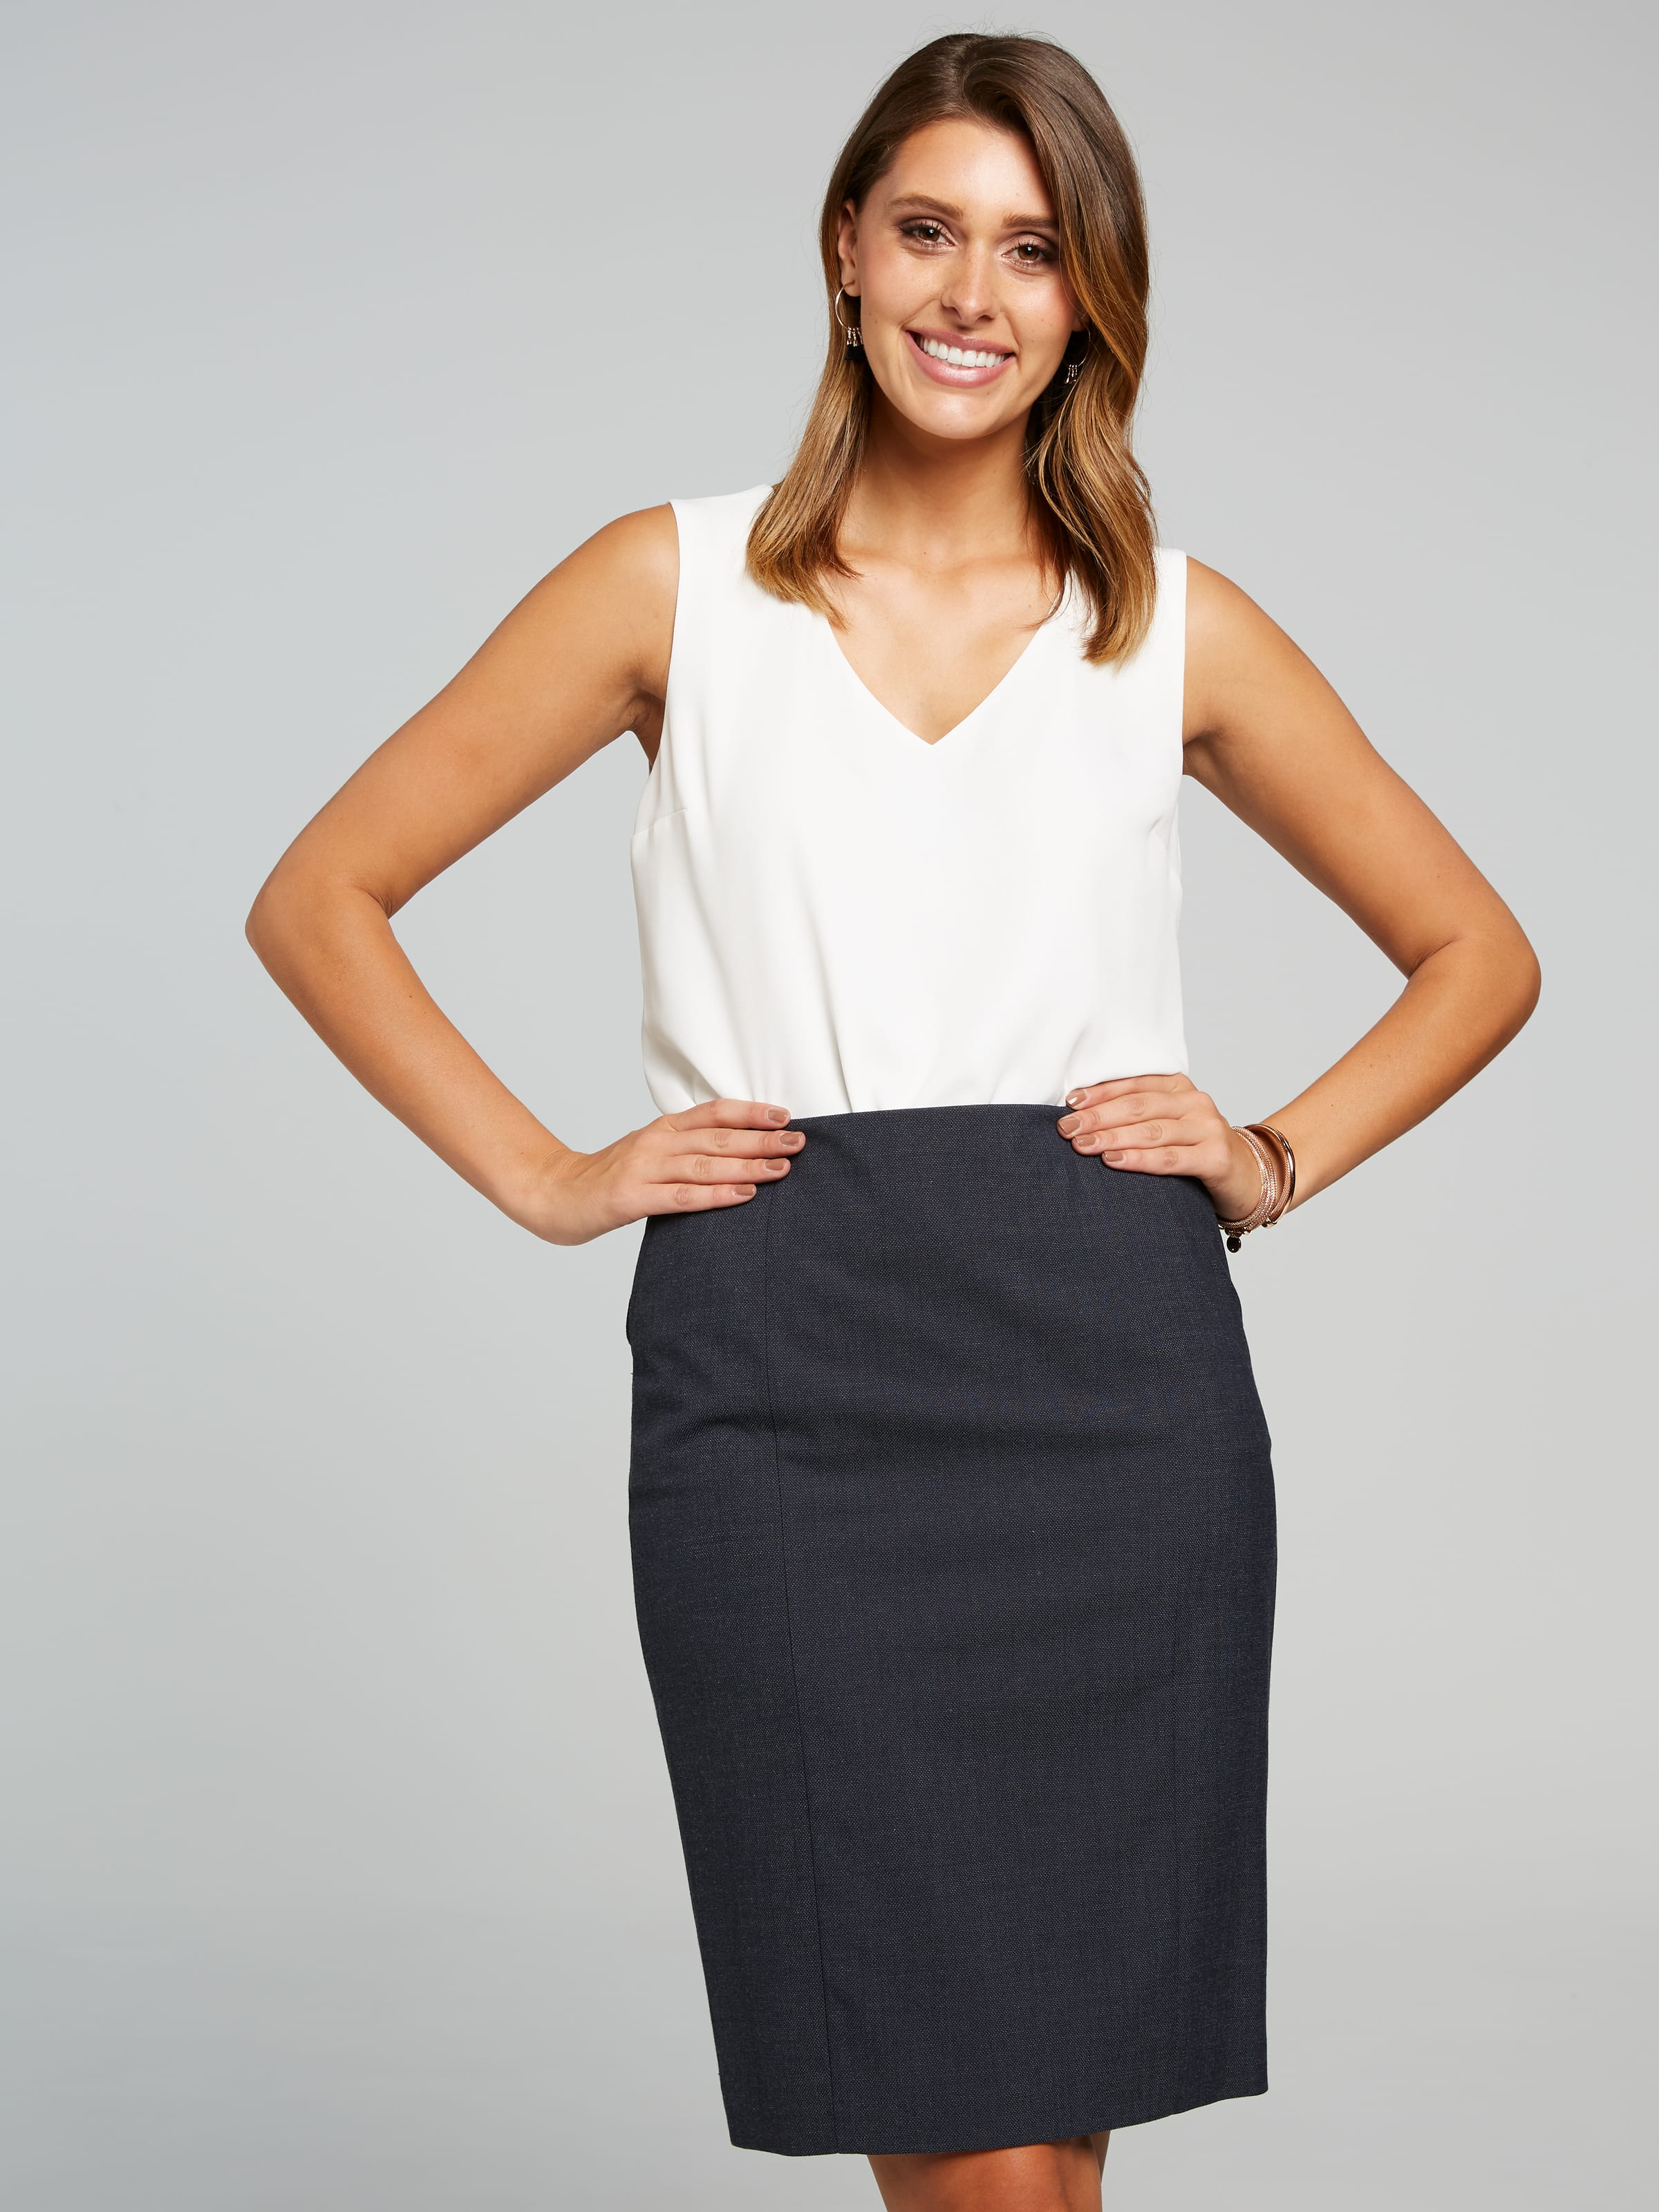 Our Classic Knee Length Skirt Features Tailored Panels On Front And Back. Considered Details Include Button Tab Detail At Waist To Coordinate With The Matching Jacket And Pant. Centre Back Zip Closure, And Vent At Back Hem For Ease Of Movement.(Storm, 16)